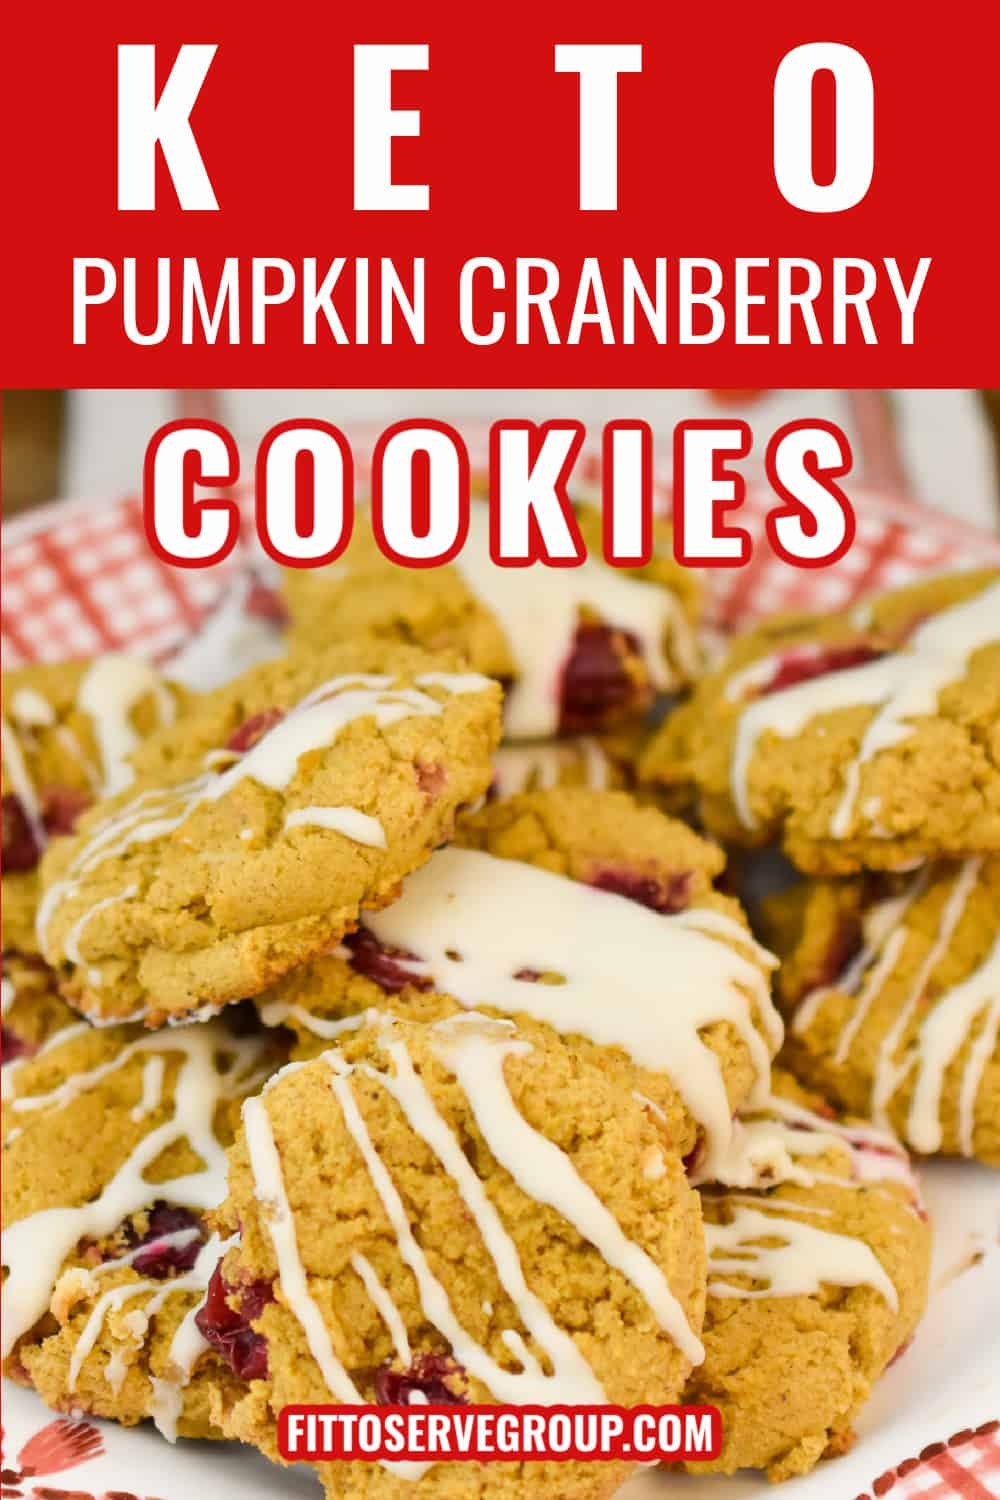 keto pumpkin cranberry cookies on red and white cookie plate